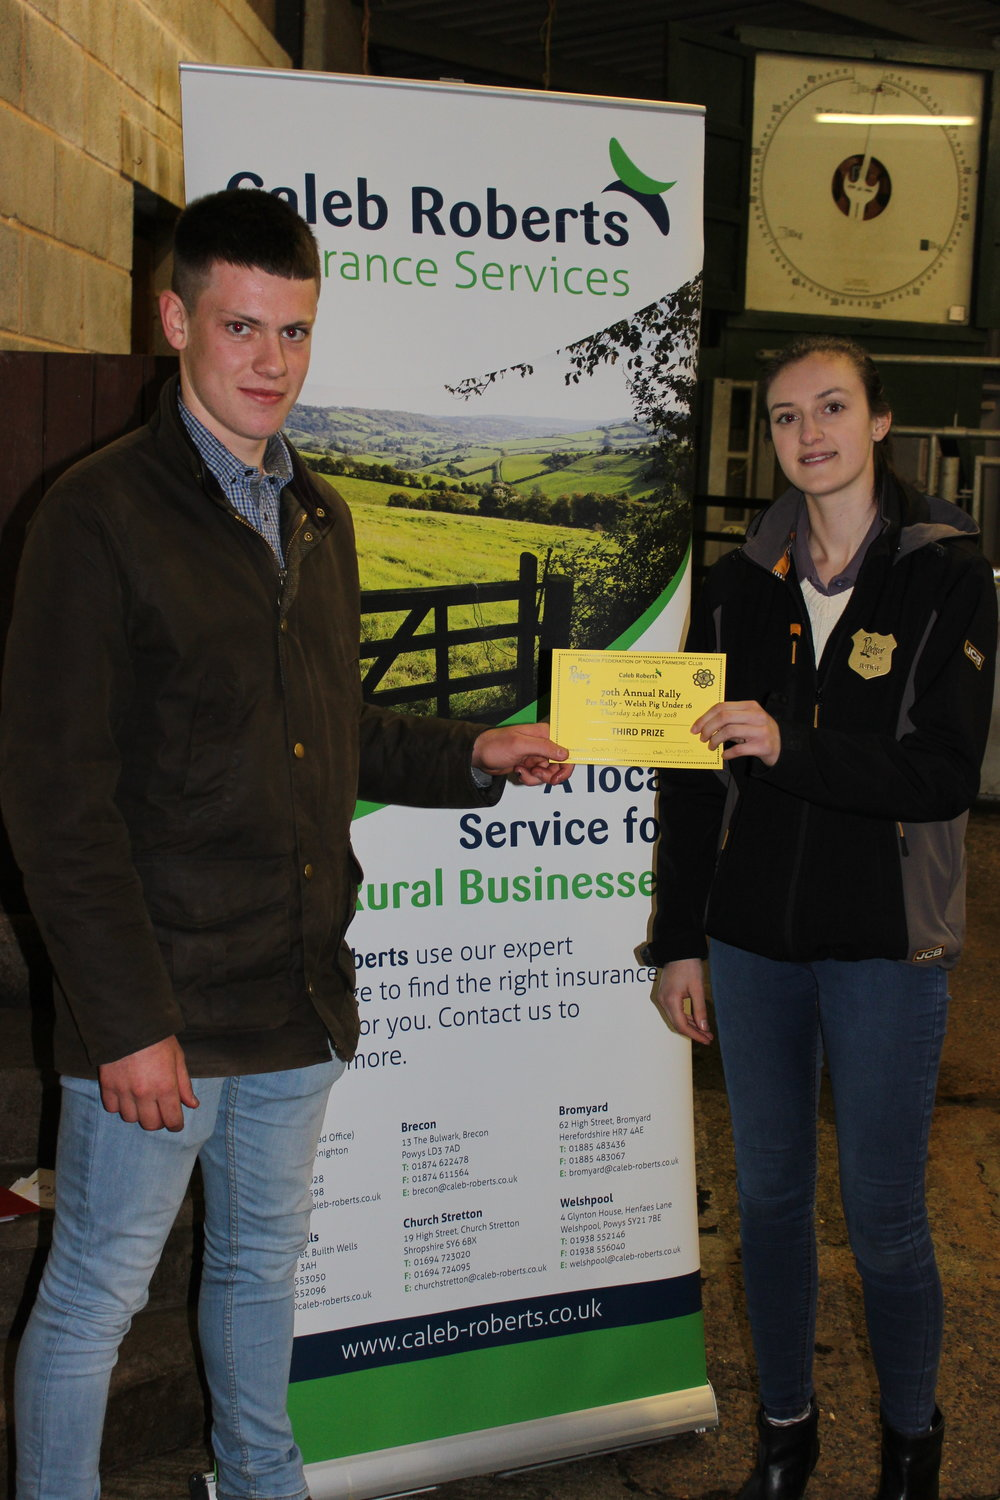 Owen Price, Knighton YFC